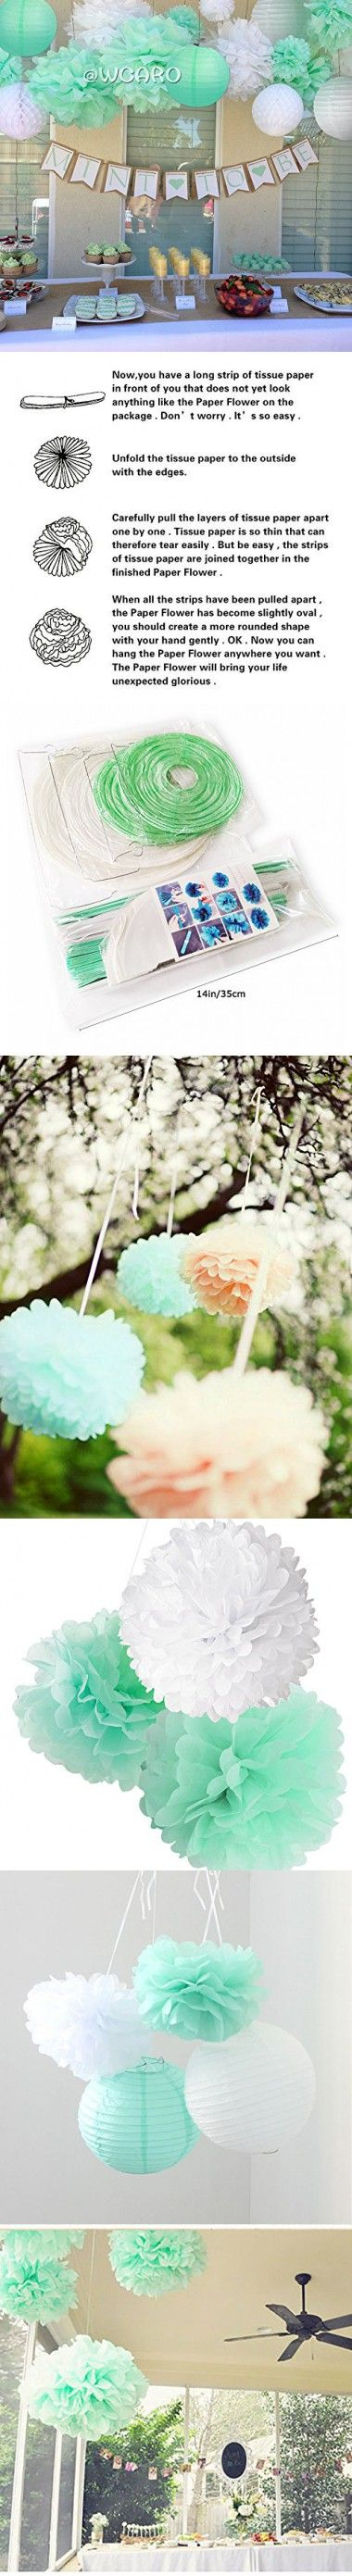 Mint To Be Wedding Decorations White Mint Tissue Paper Pom Poms ...